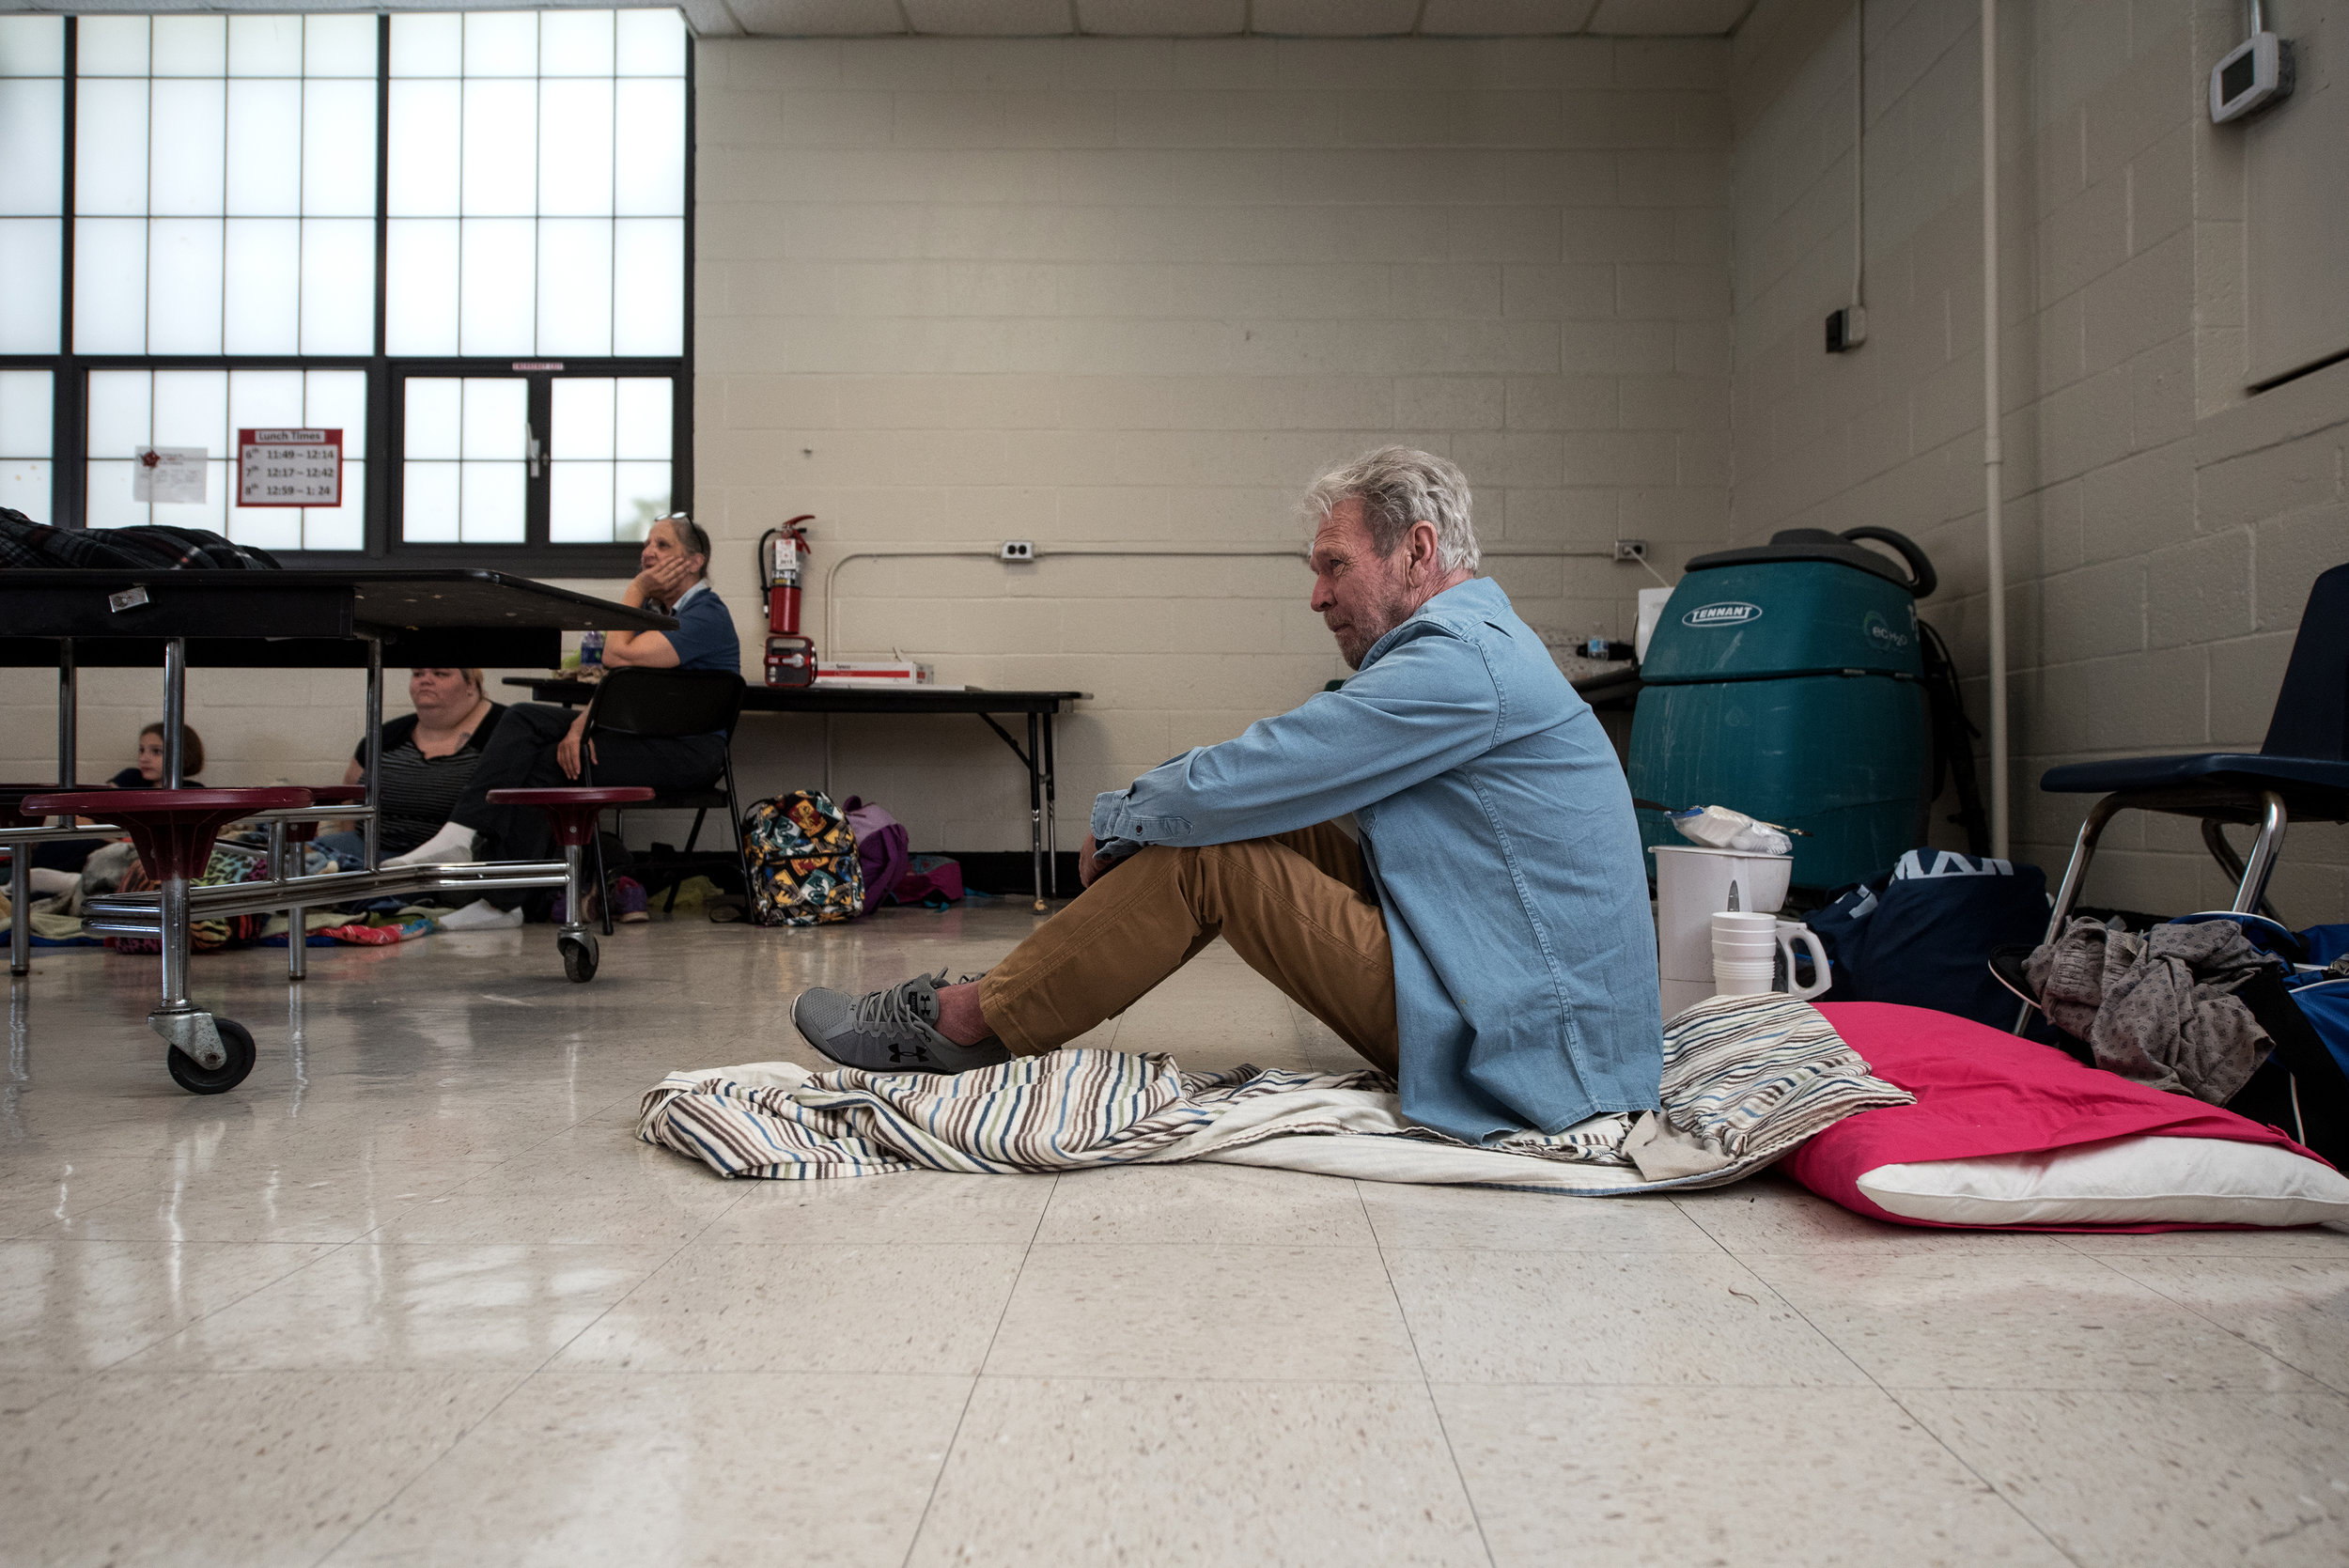 Patrick Russell sits in Burgaw Middle School as he seeks shelter ahead of the forecasted landfall of Hurricane Florence in Burgaw, North Carolina, USA, 12 September 2018.